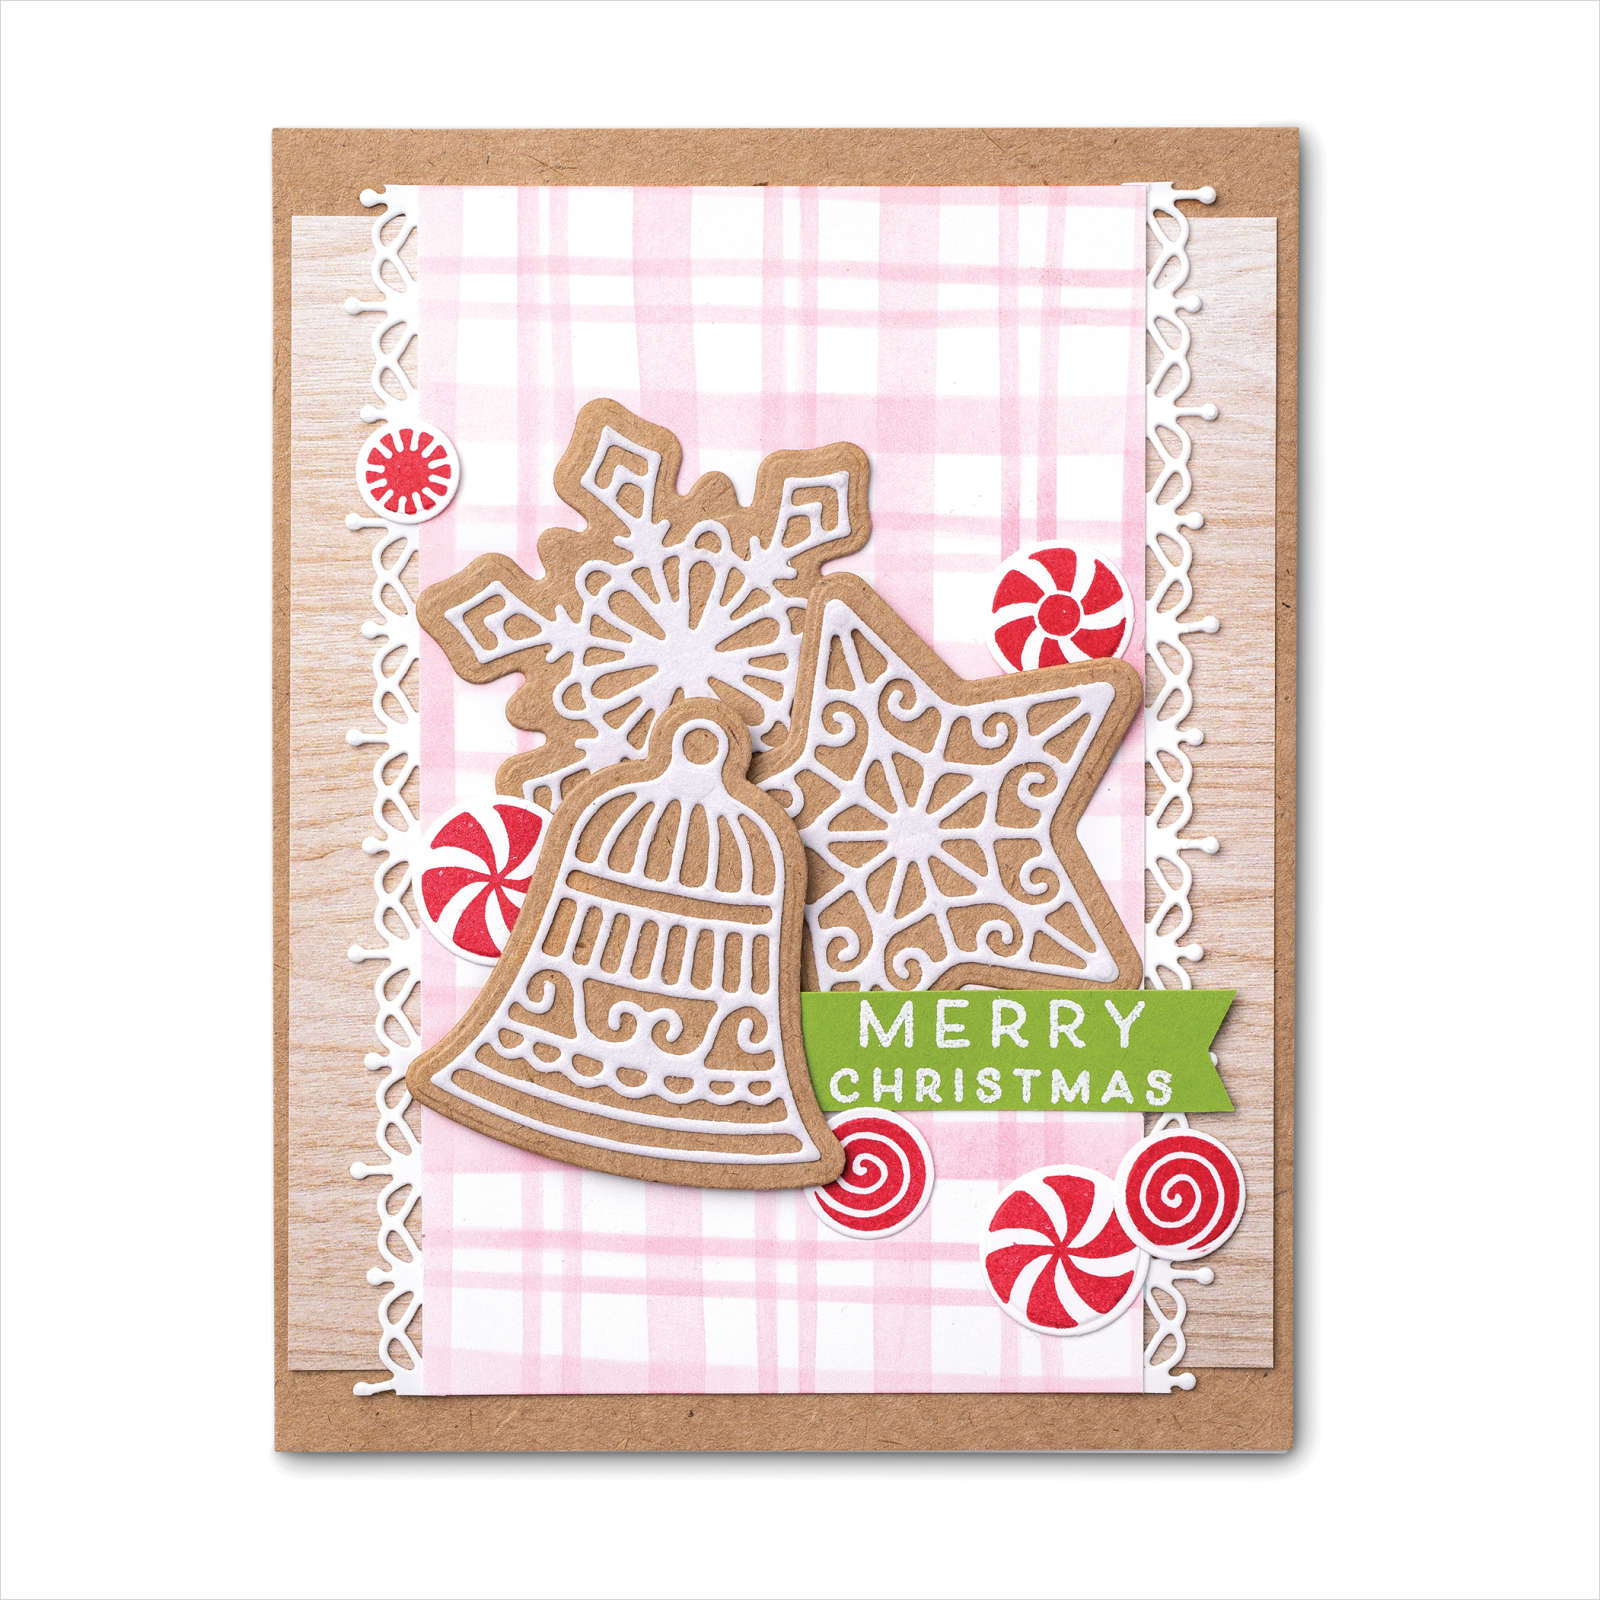 August-December 2021 Mini Catalog - Frosted Gingerbread & Peppermint Card